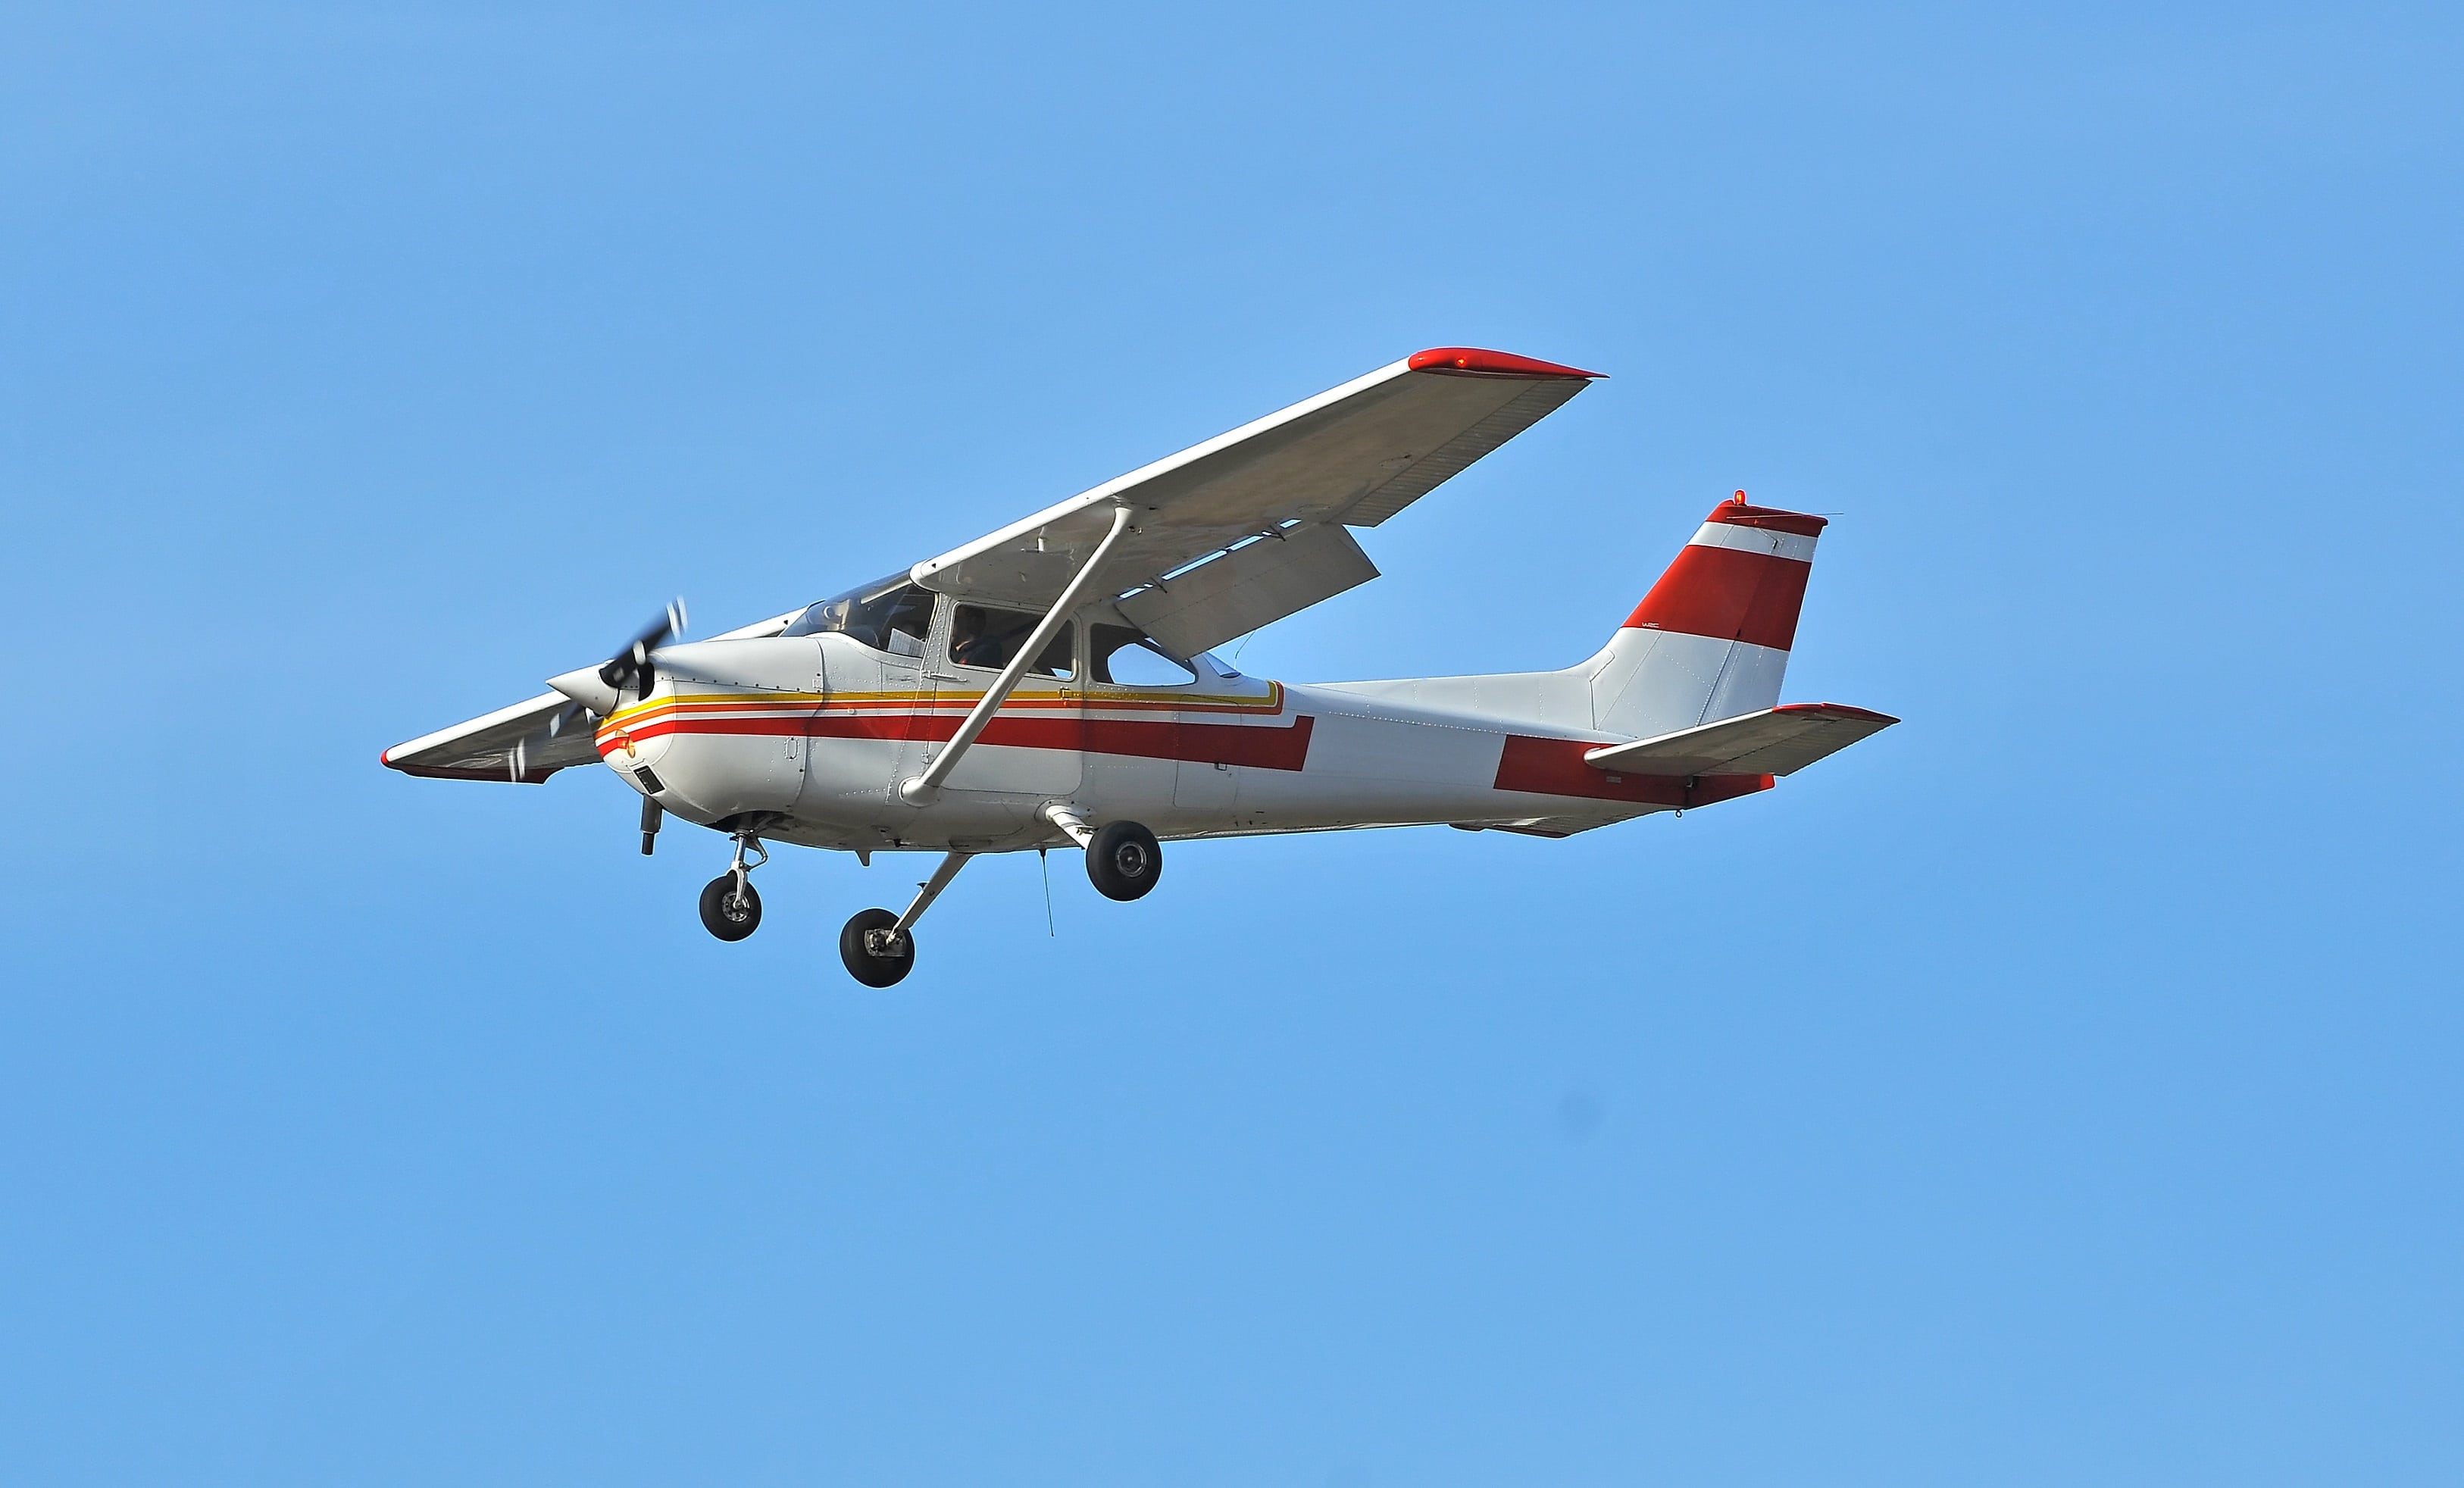 Cessna Skyhawk: Popular light aircraft